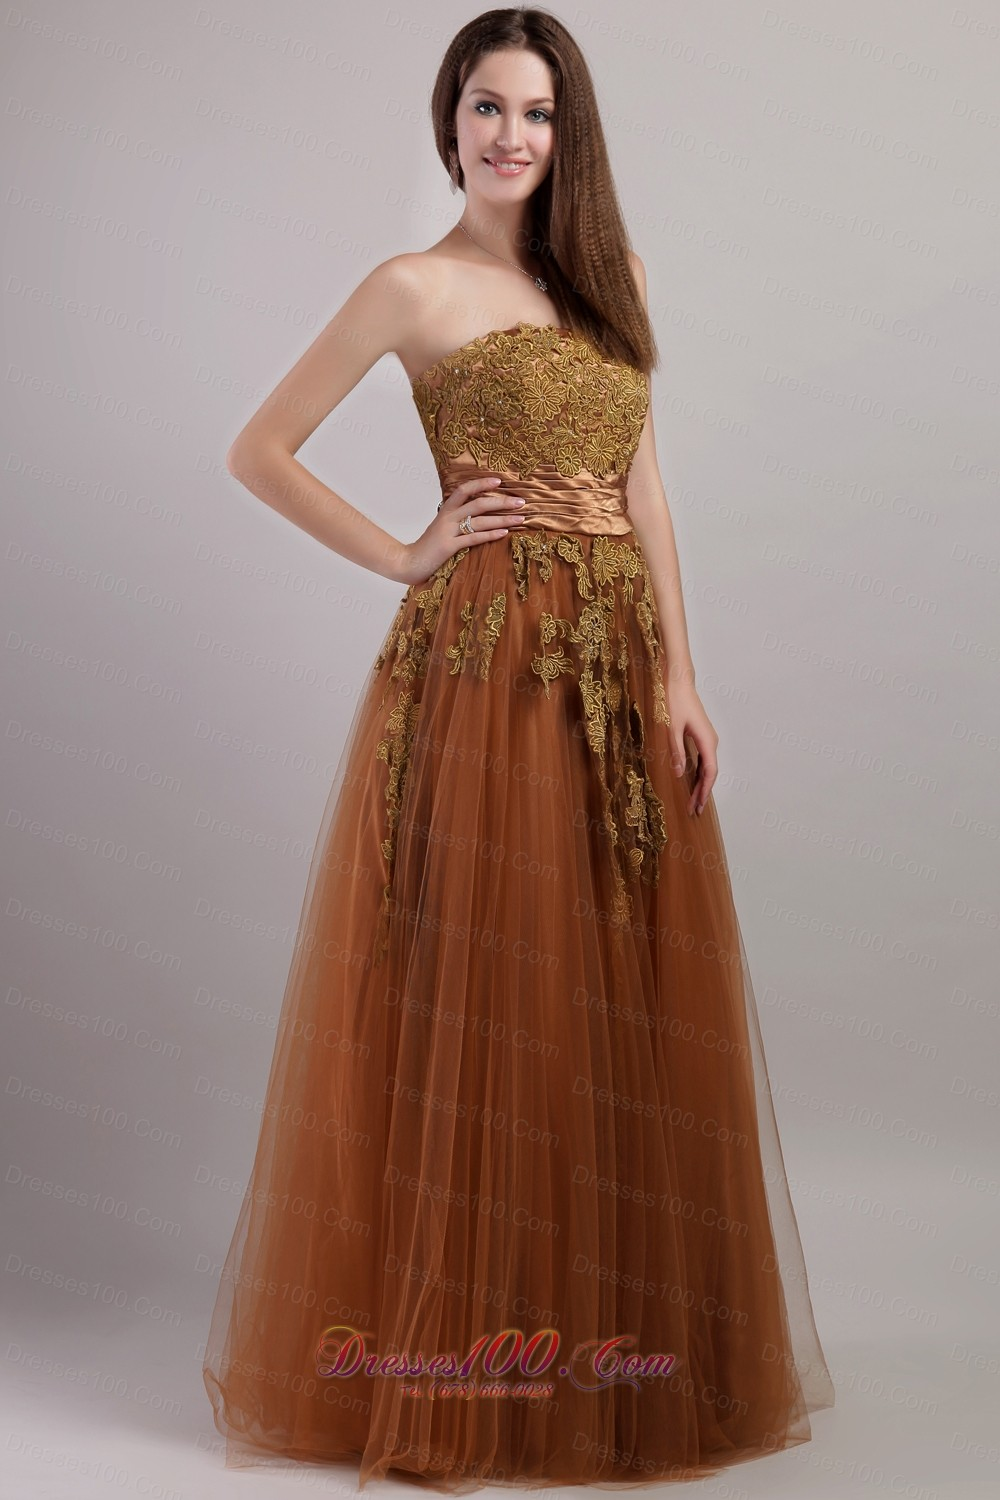 Rust Red Empire Tulle Floral Appliques Prom Dress - US$155.69